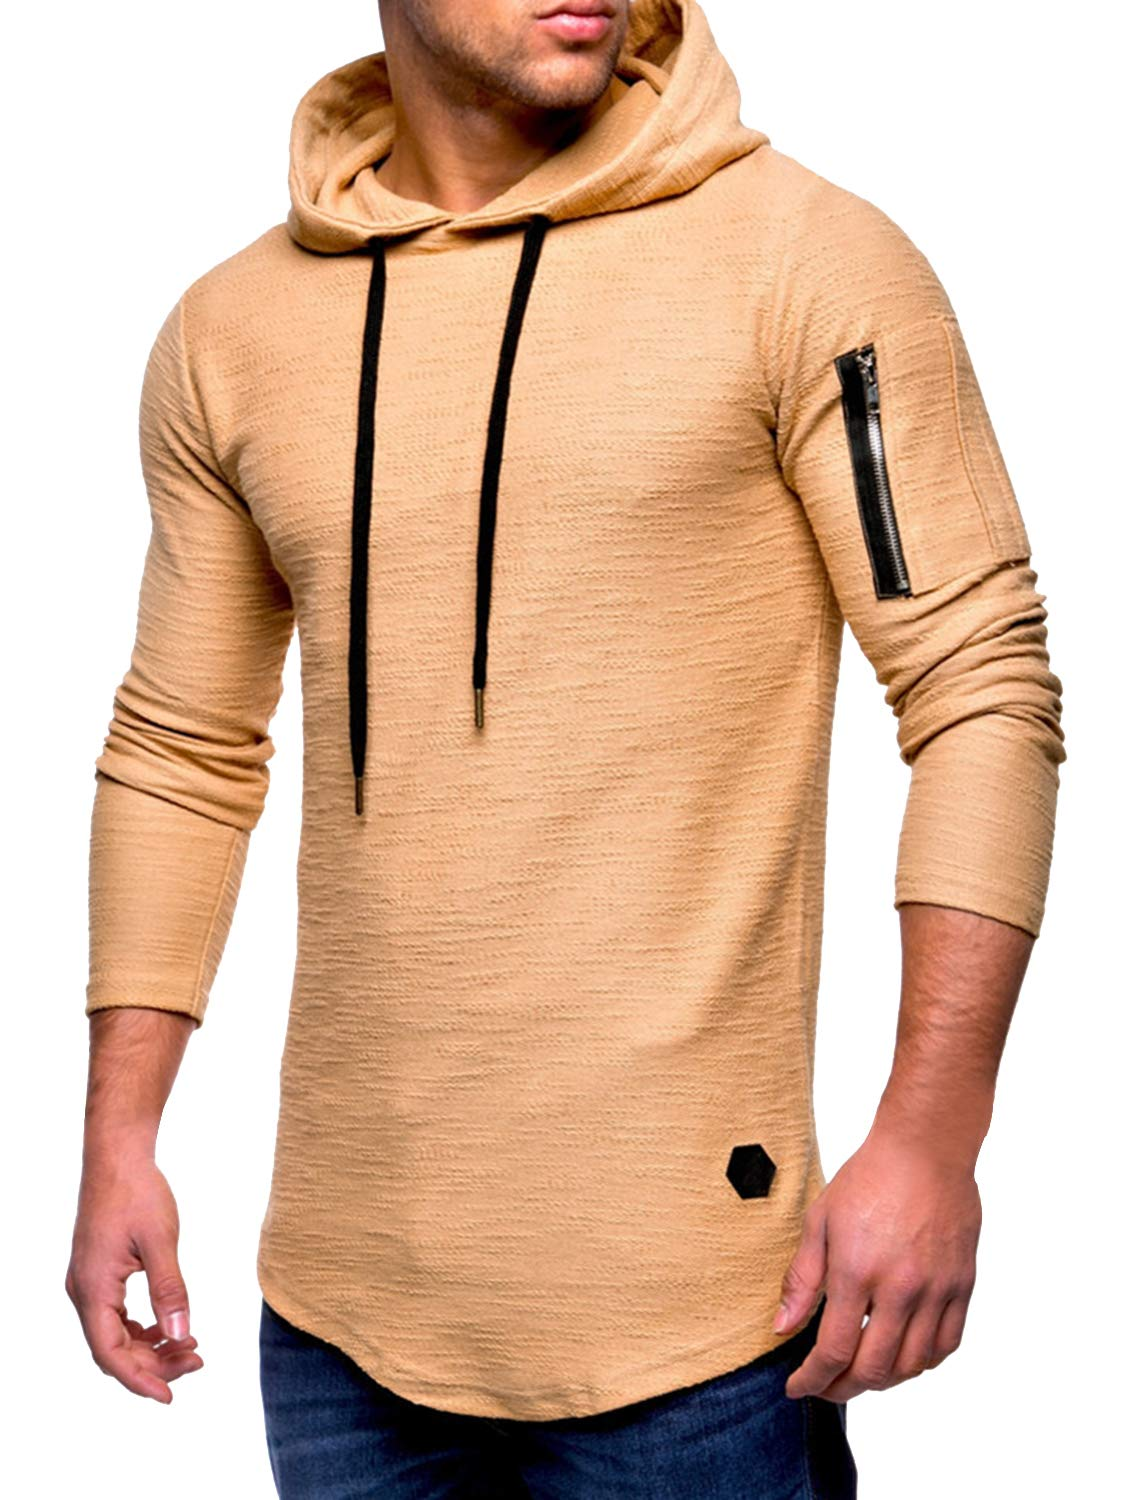 AitosuLa Men's Slim Fit Long Sleeve T-Shirt Tops Solid Crew Neck Tunic Tee Casual Zipper Sport Hoodie Outwear